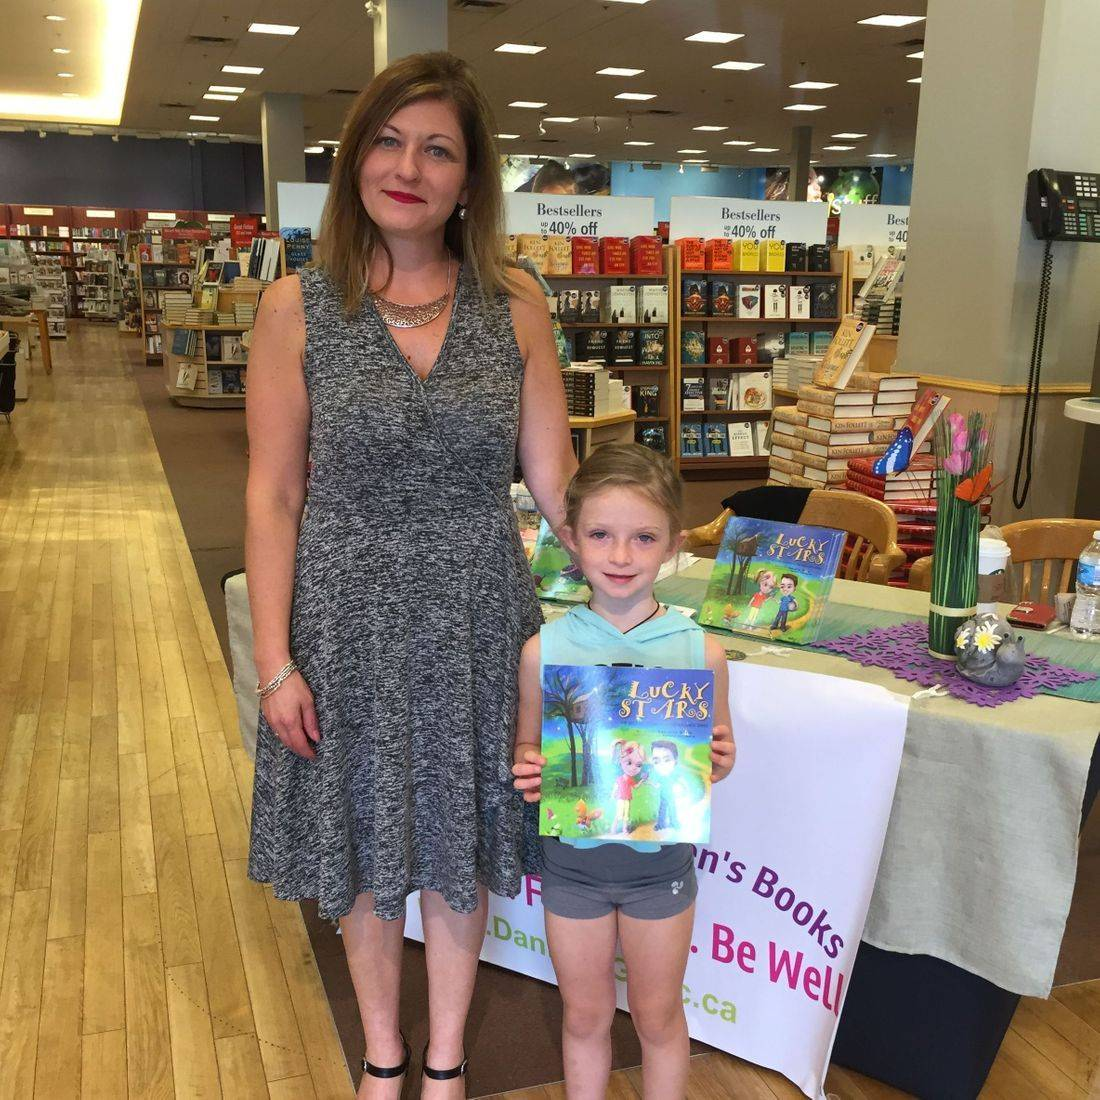 Burlington Chapters September 2017 Book Signing Event for Deep Down Inside and Lucky Stars with Author Daniella Grsic